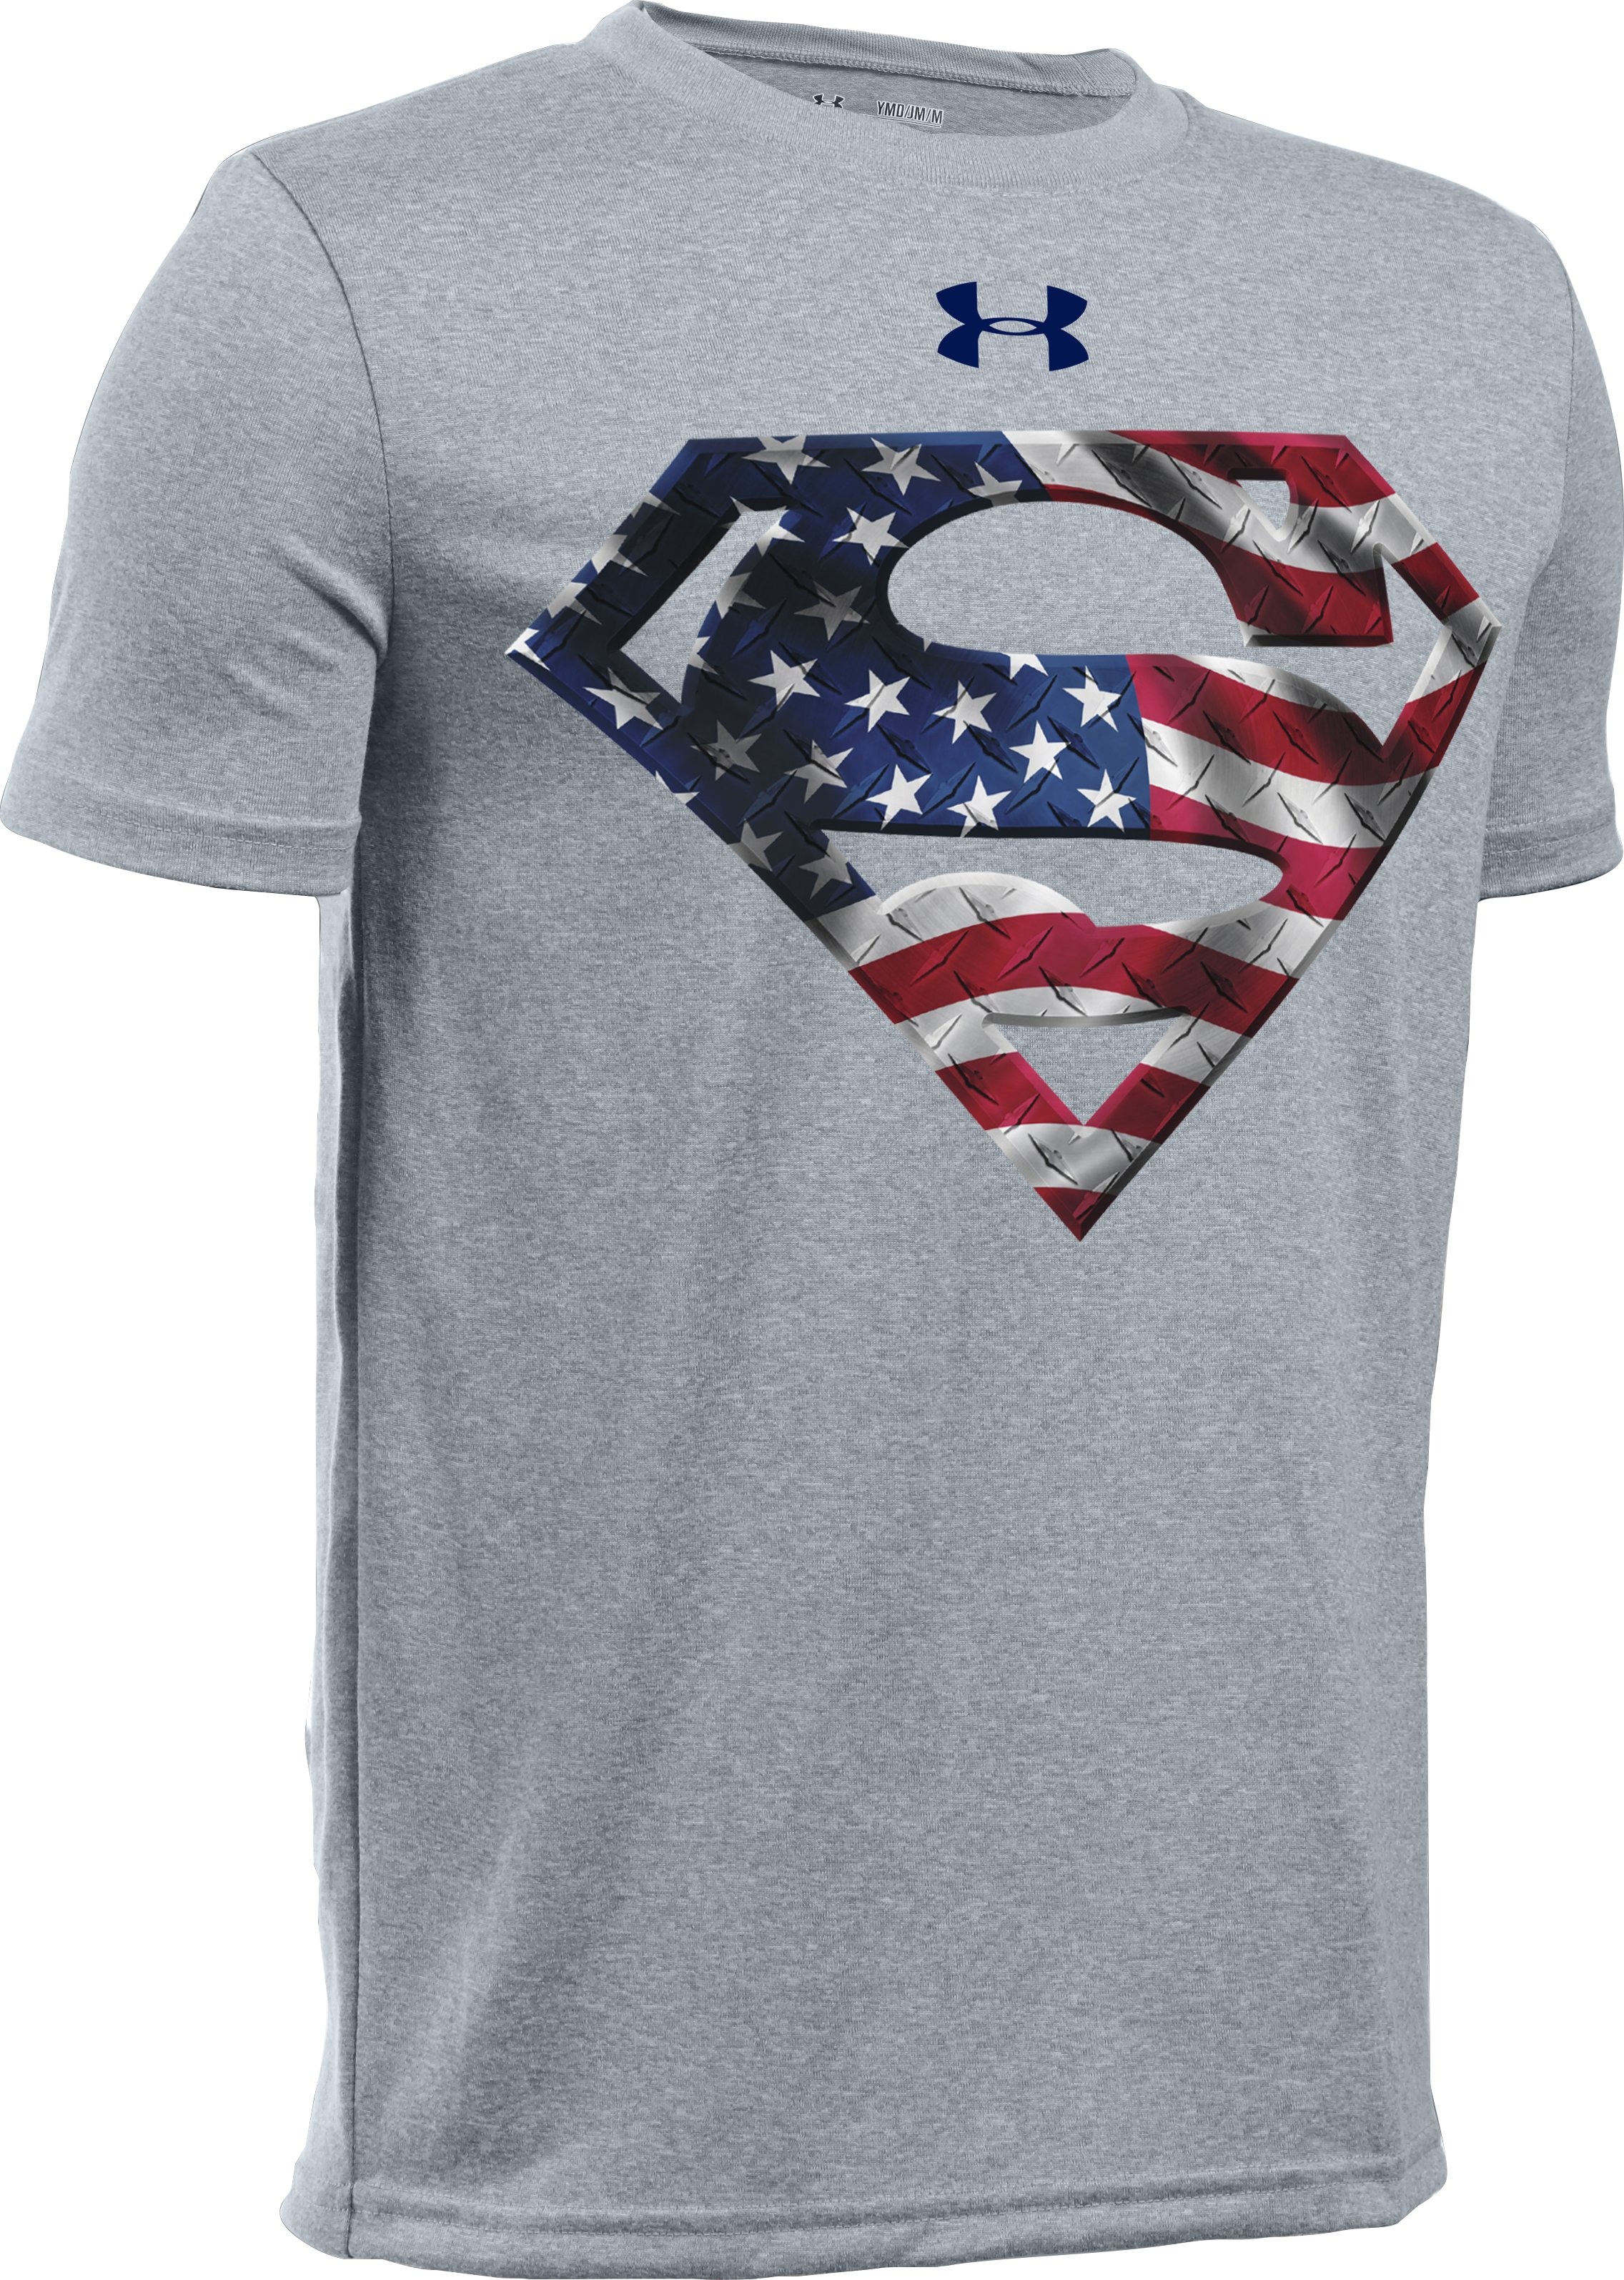 Boys' UA Alter Ego Superman USA T-Shirt, True Gray Heather